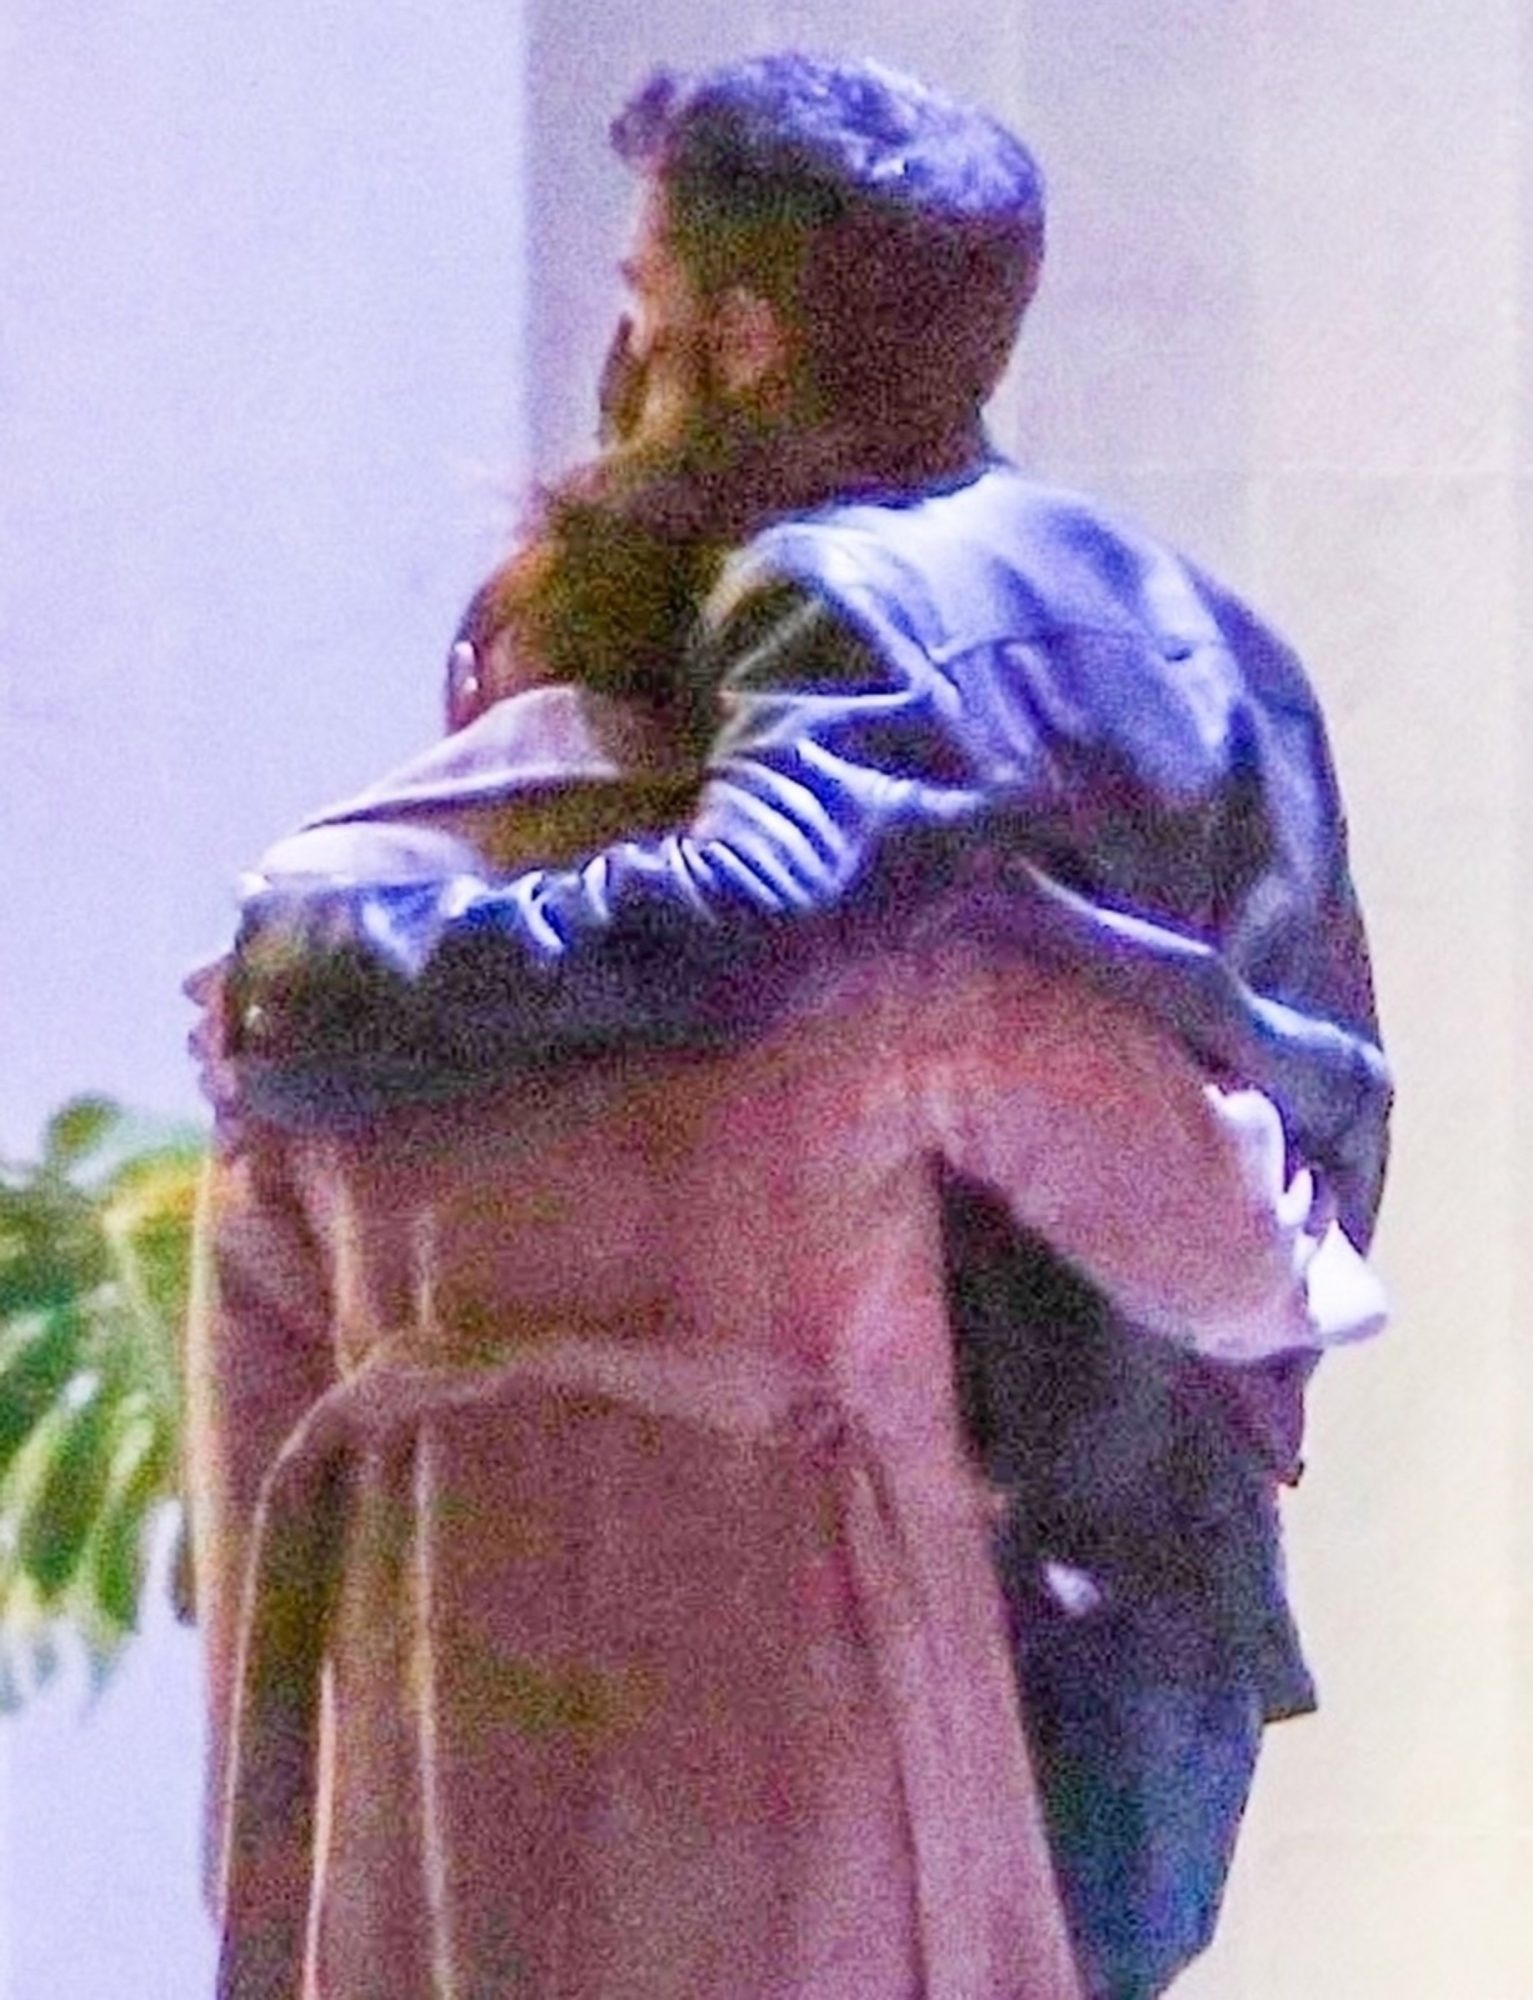 *NO REUSE* Jennifer Lopez and Ben Affleck confirm their relationship status with PDA while on a dinner date! **WEB EMBARGO UNTIL Thursday, JUNE 3, 2021 at 3:00 PM EDT**